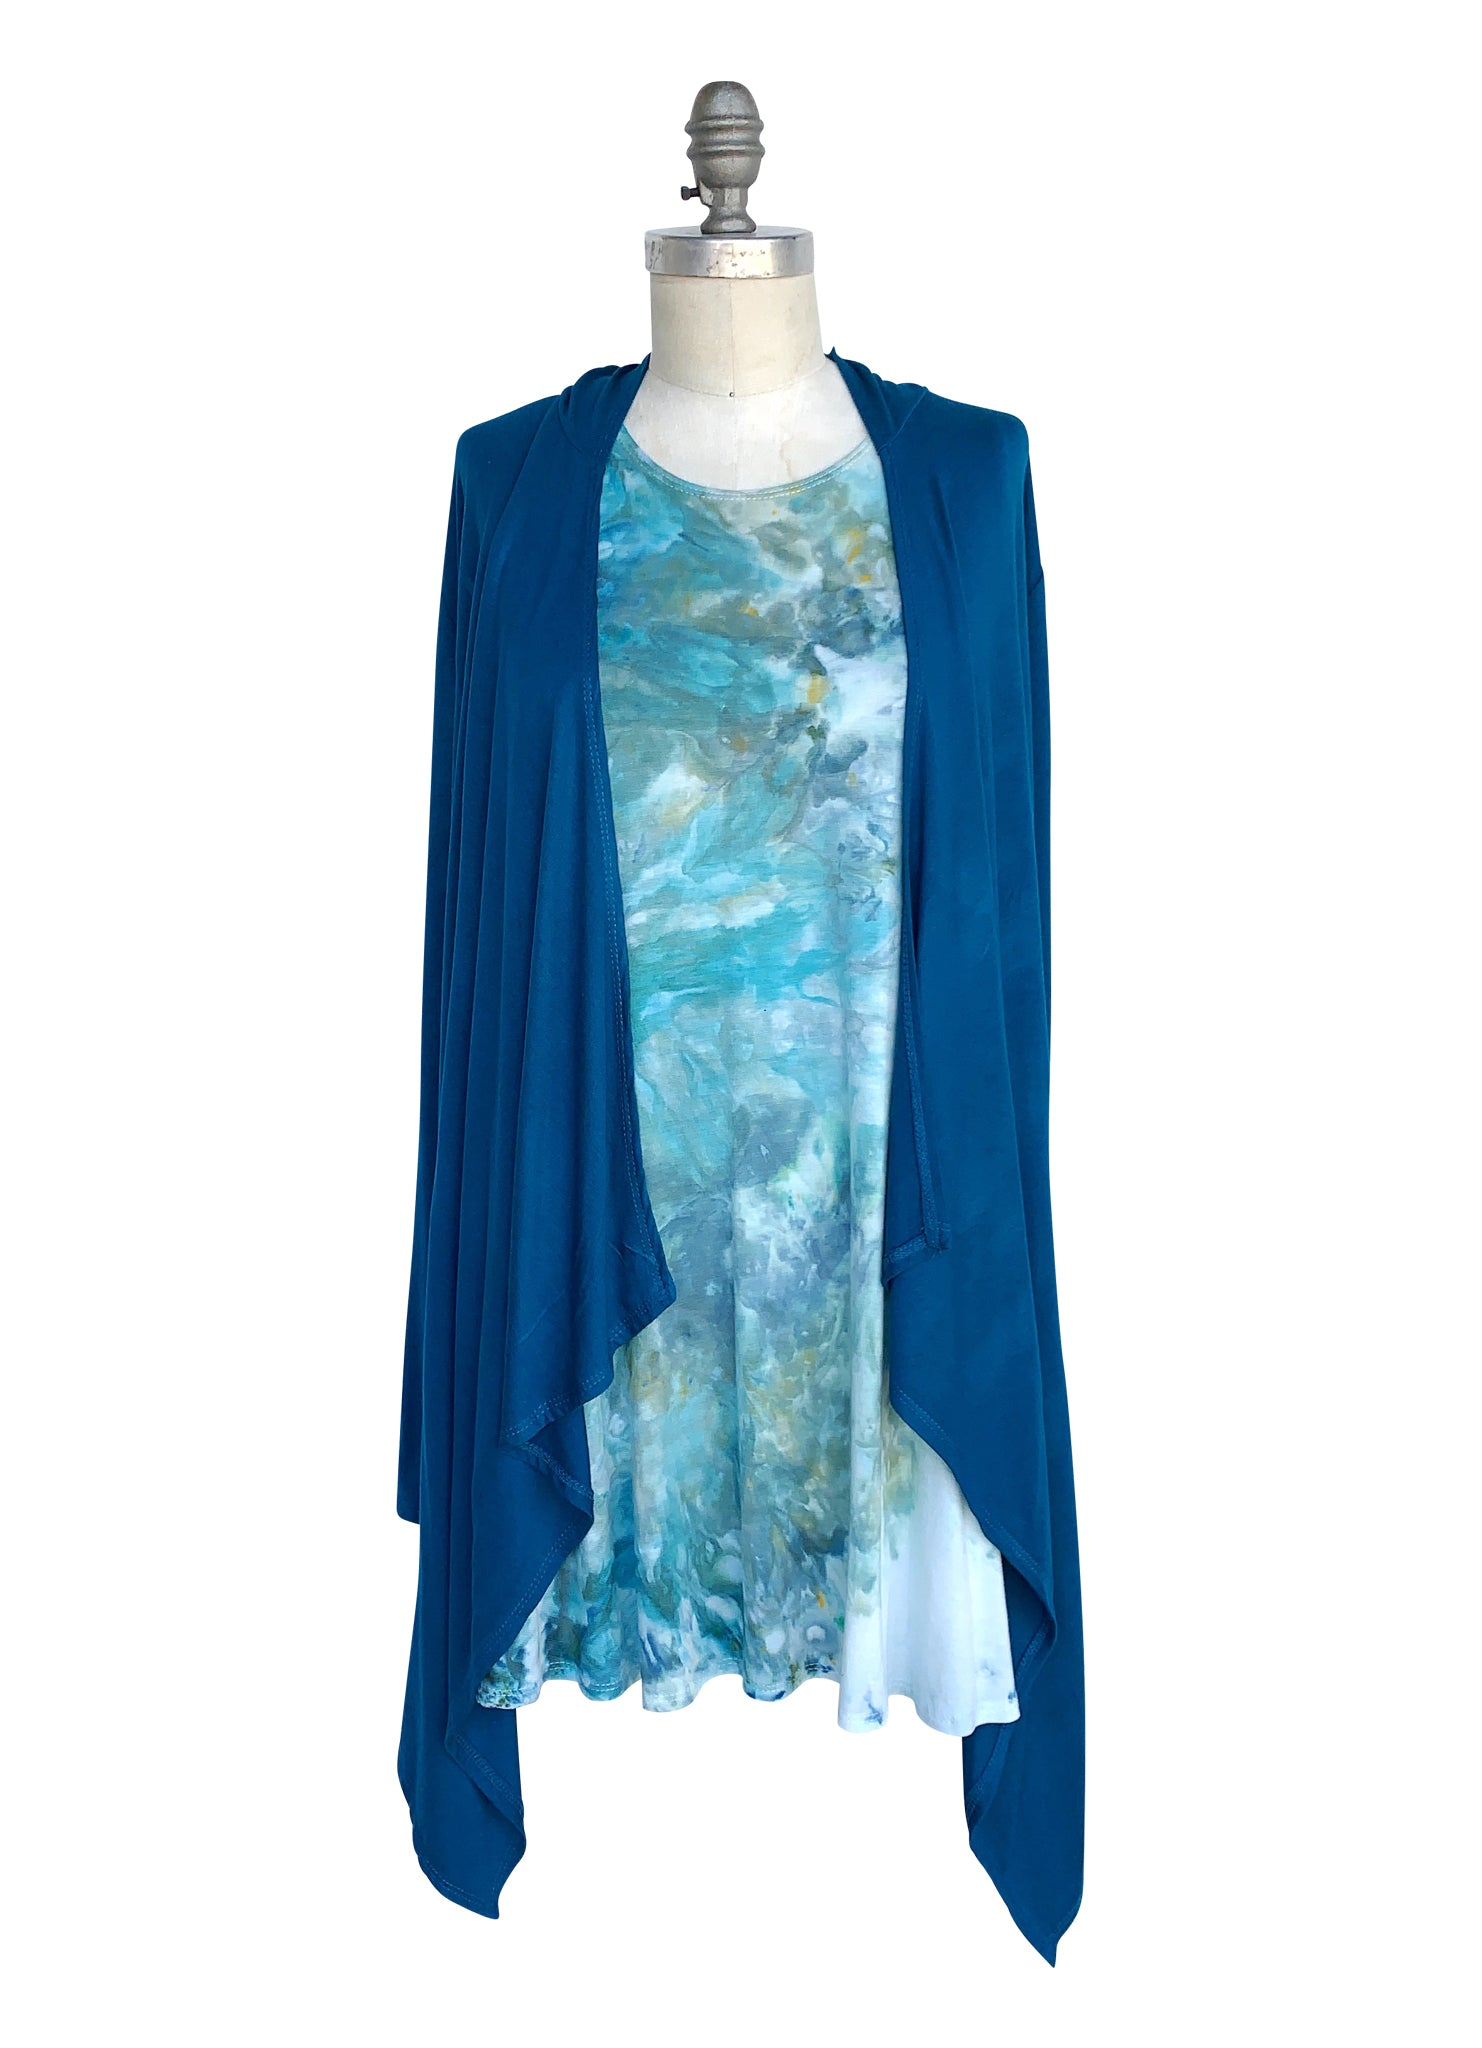 A-Line Tunic Tank and Drape Front Hoodie Bundle in Teal-Sea Glass - Top - Dyetology